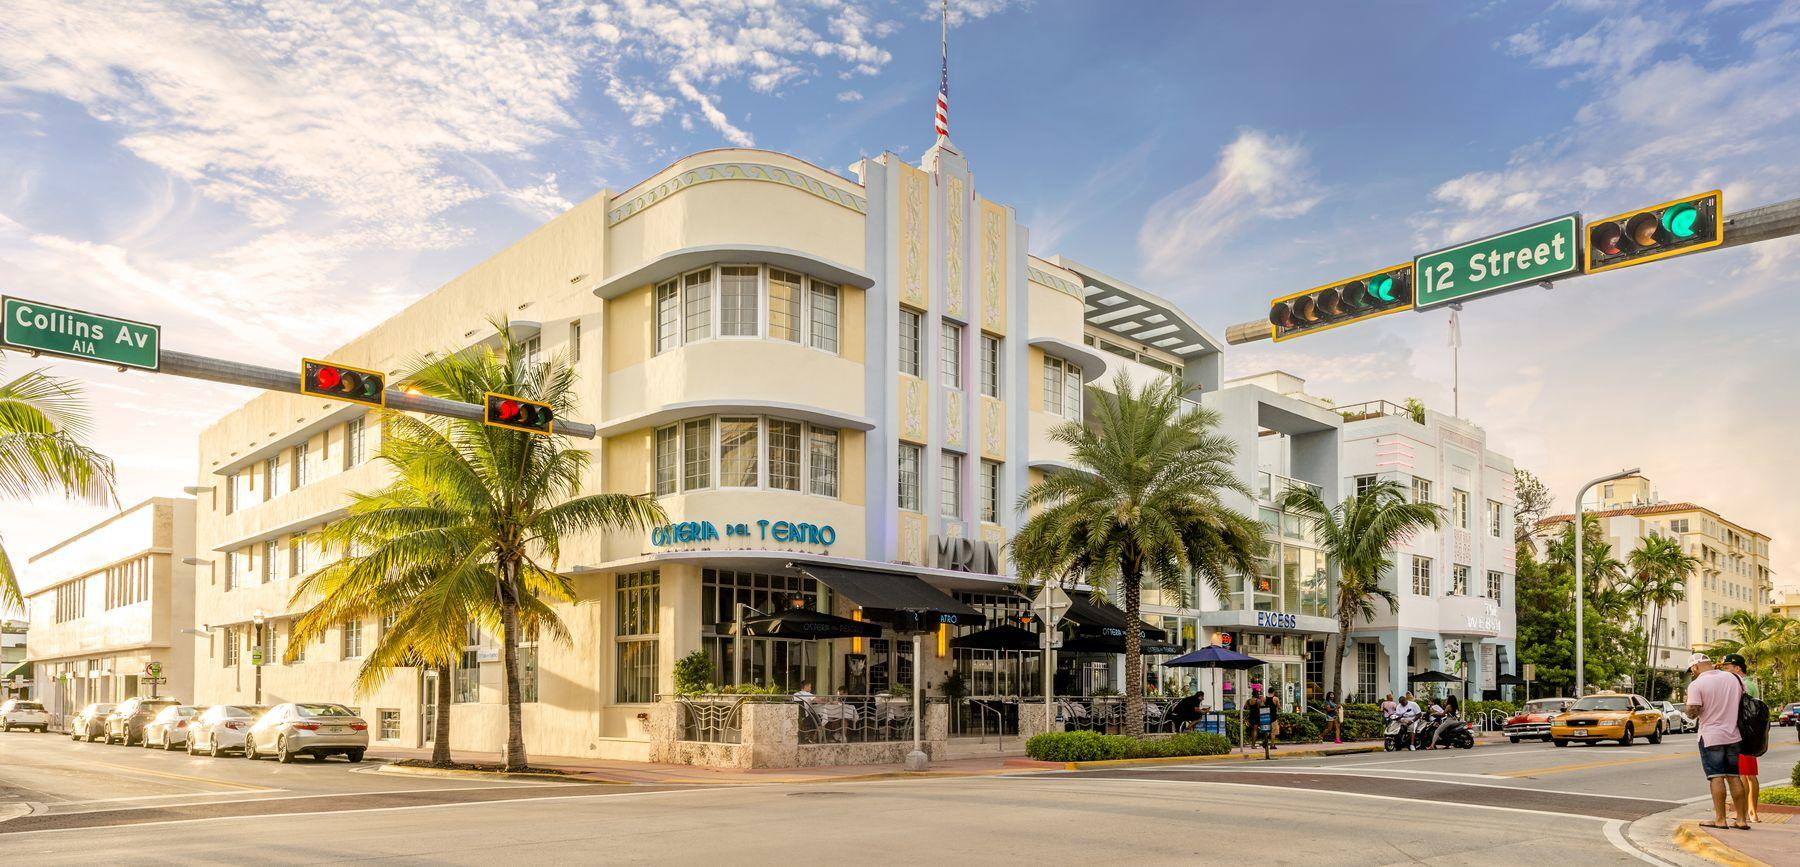 hotel building at the intersection of 12 street and collins ave